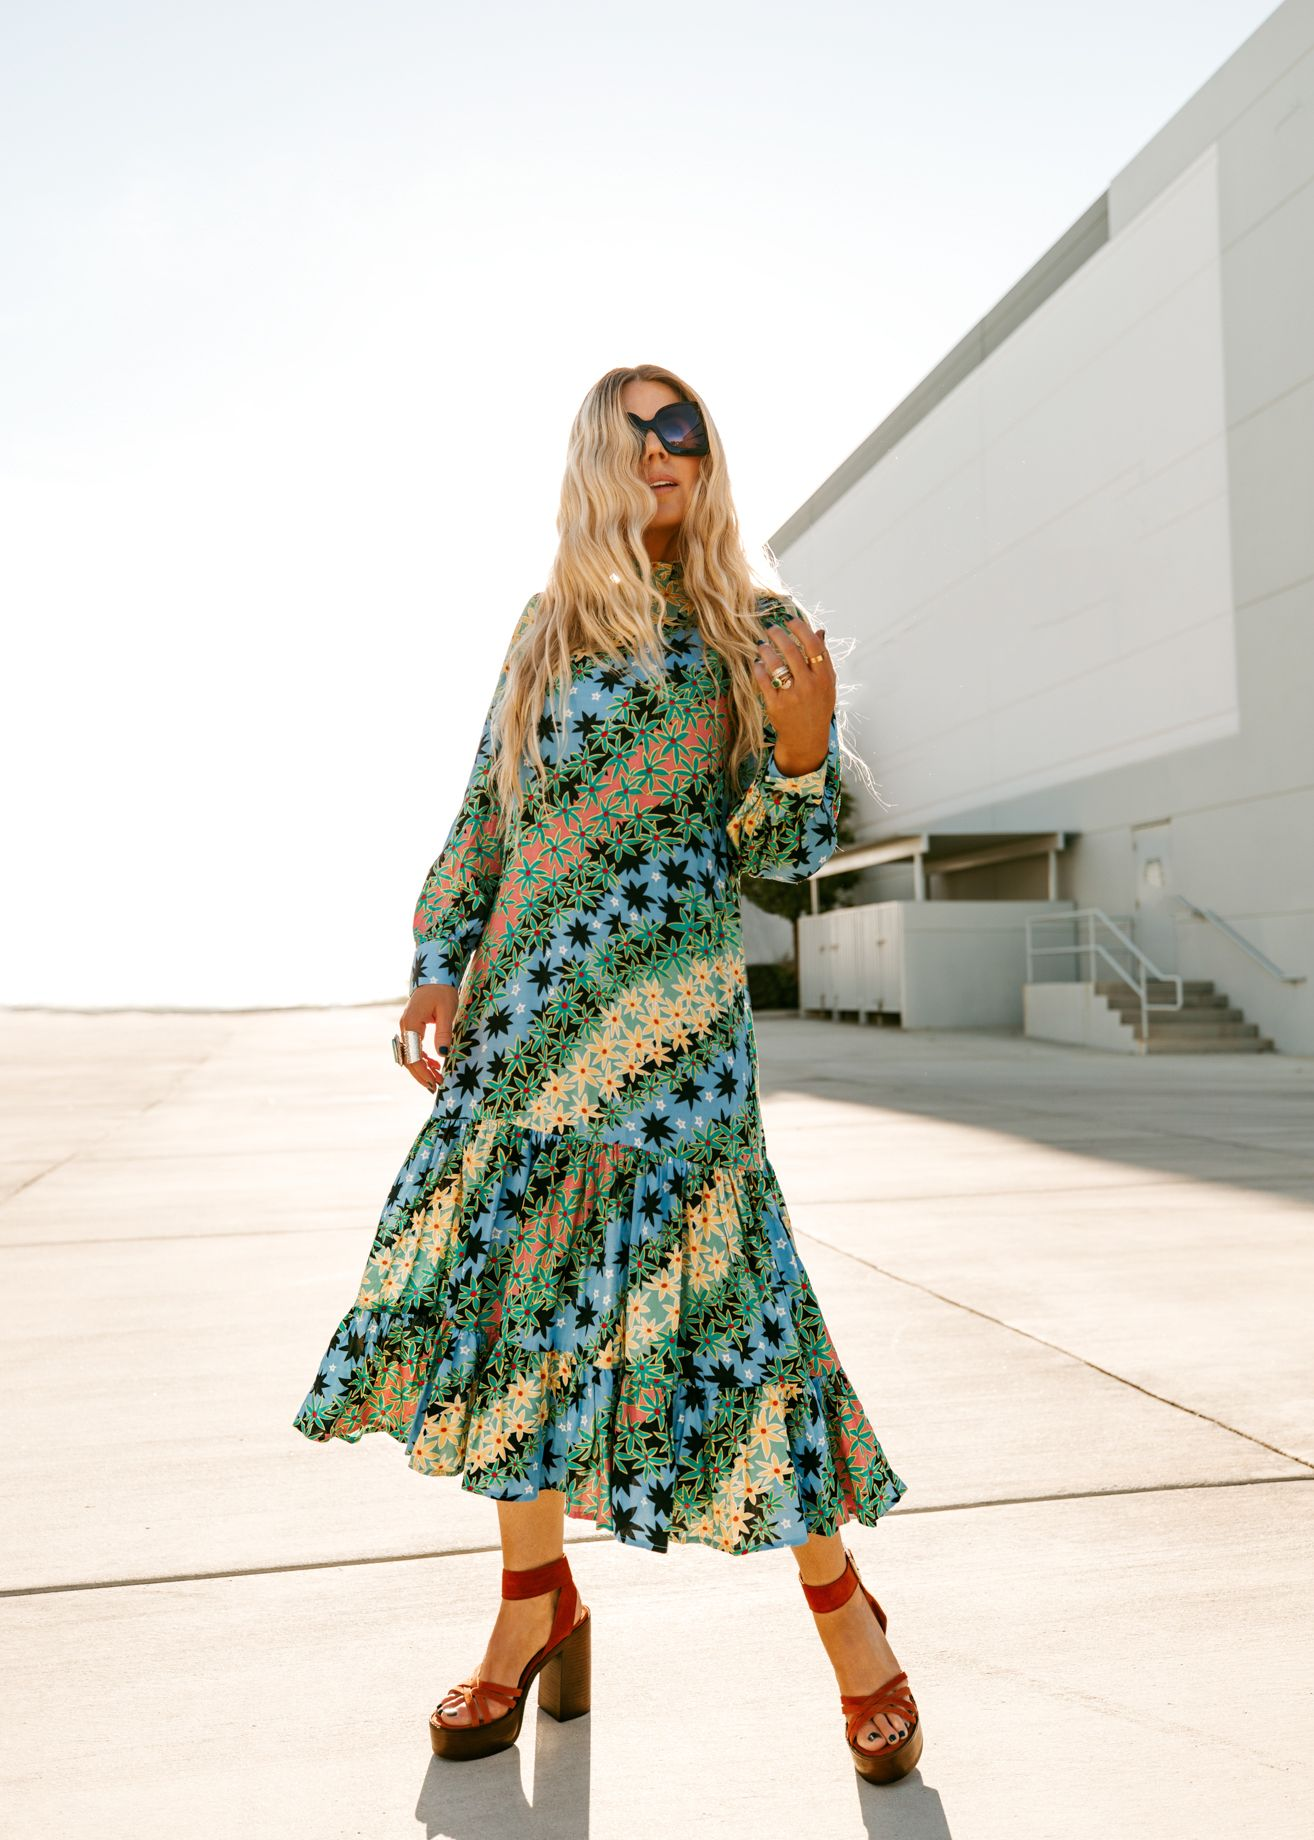 Lisa Allen From Salty Lashes On New Arrivals For May  #lisaallen #saltylashes #may #newarrivals #maynewarrivals #summer #style #fashion #summerfashion #summerstyle #womensfashion #womensstyle